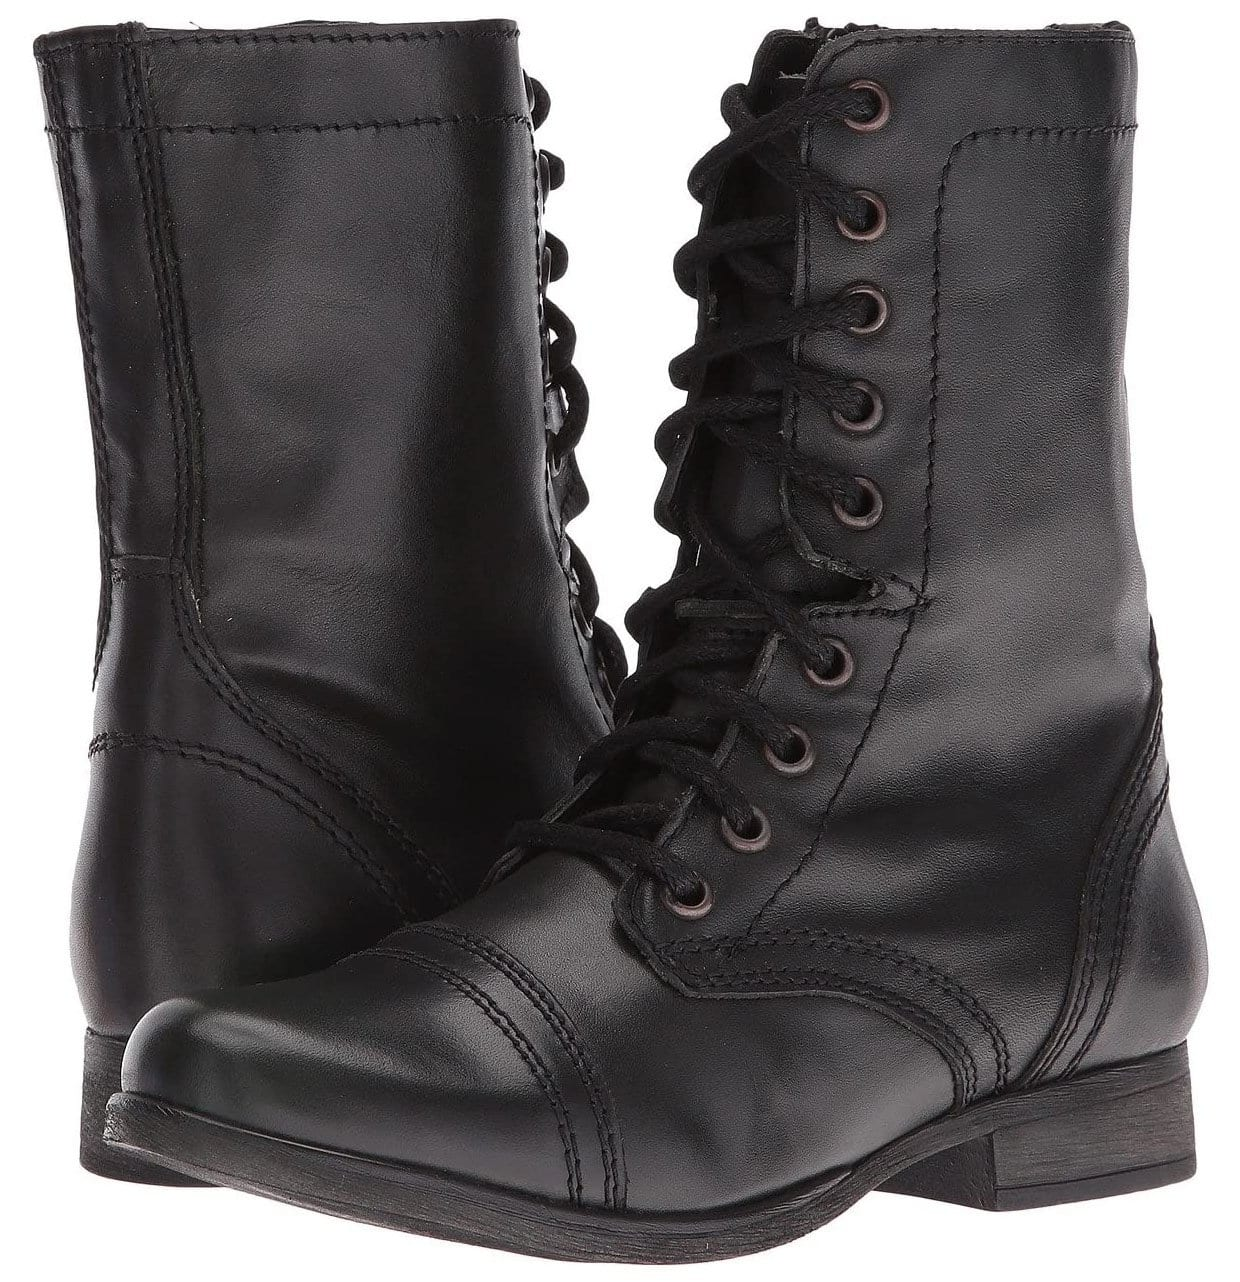 The military-inspired Steve Madden Troopa boot is one of the brand's most popular styles